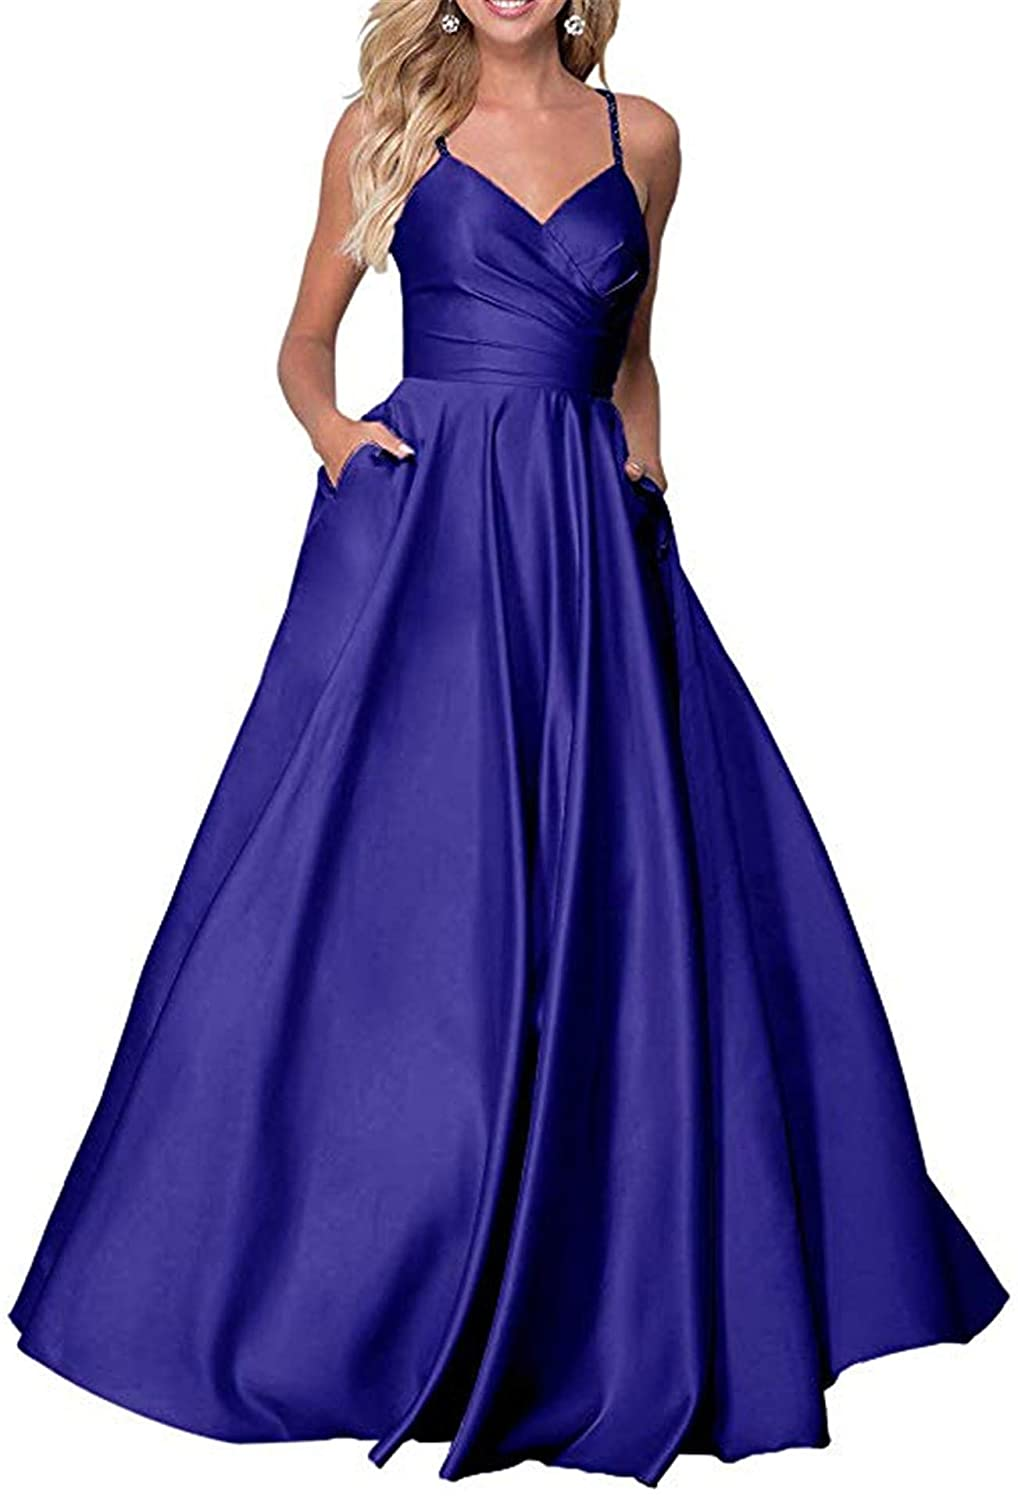 Royal bluee QiJunGe Women's V Neck A Line Prom Dress with Pockets Satin Spaghetti Formal Ball Gown